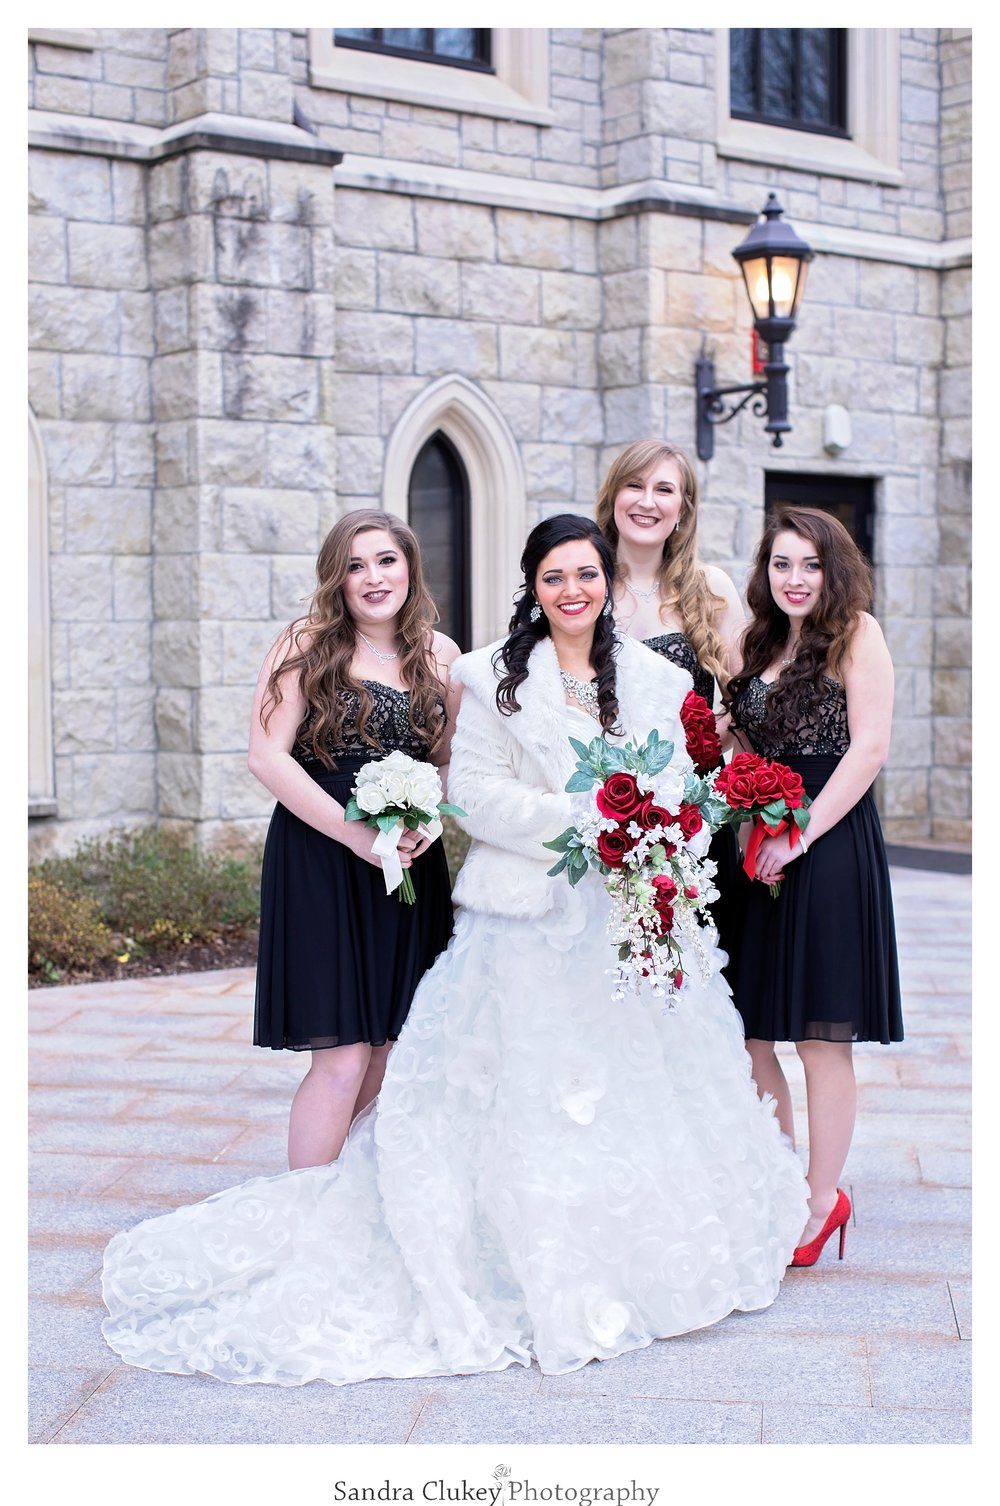 Delightful image of bride with her girls